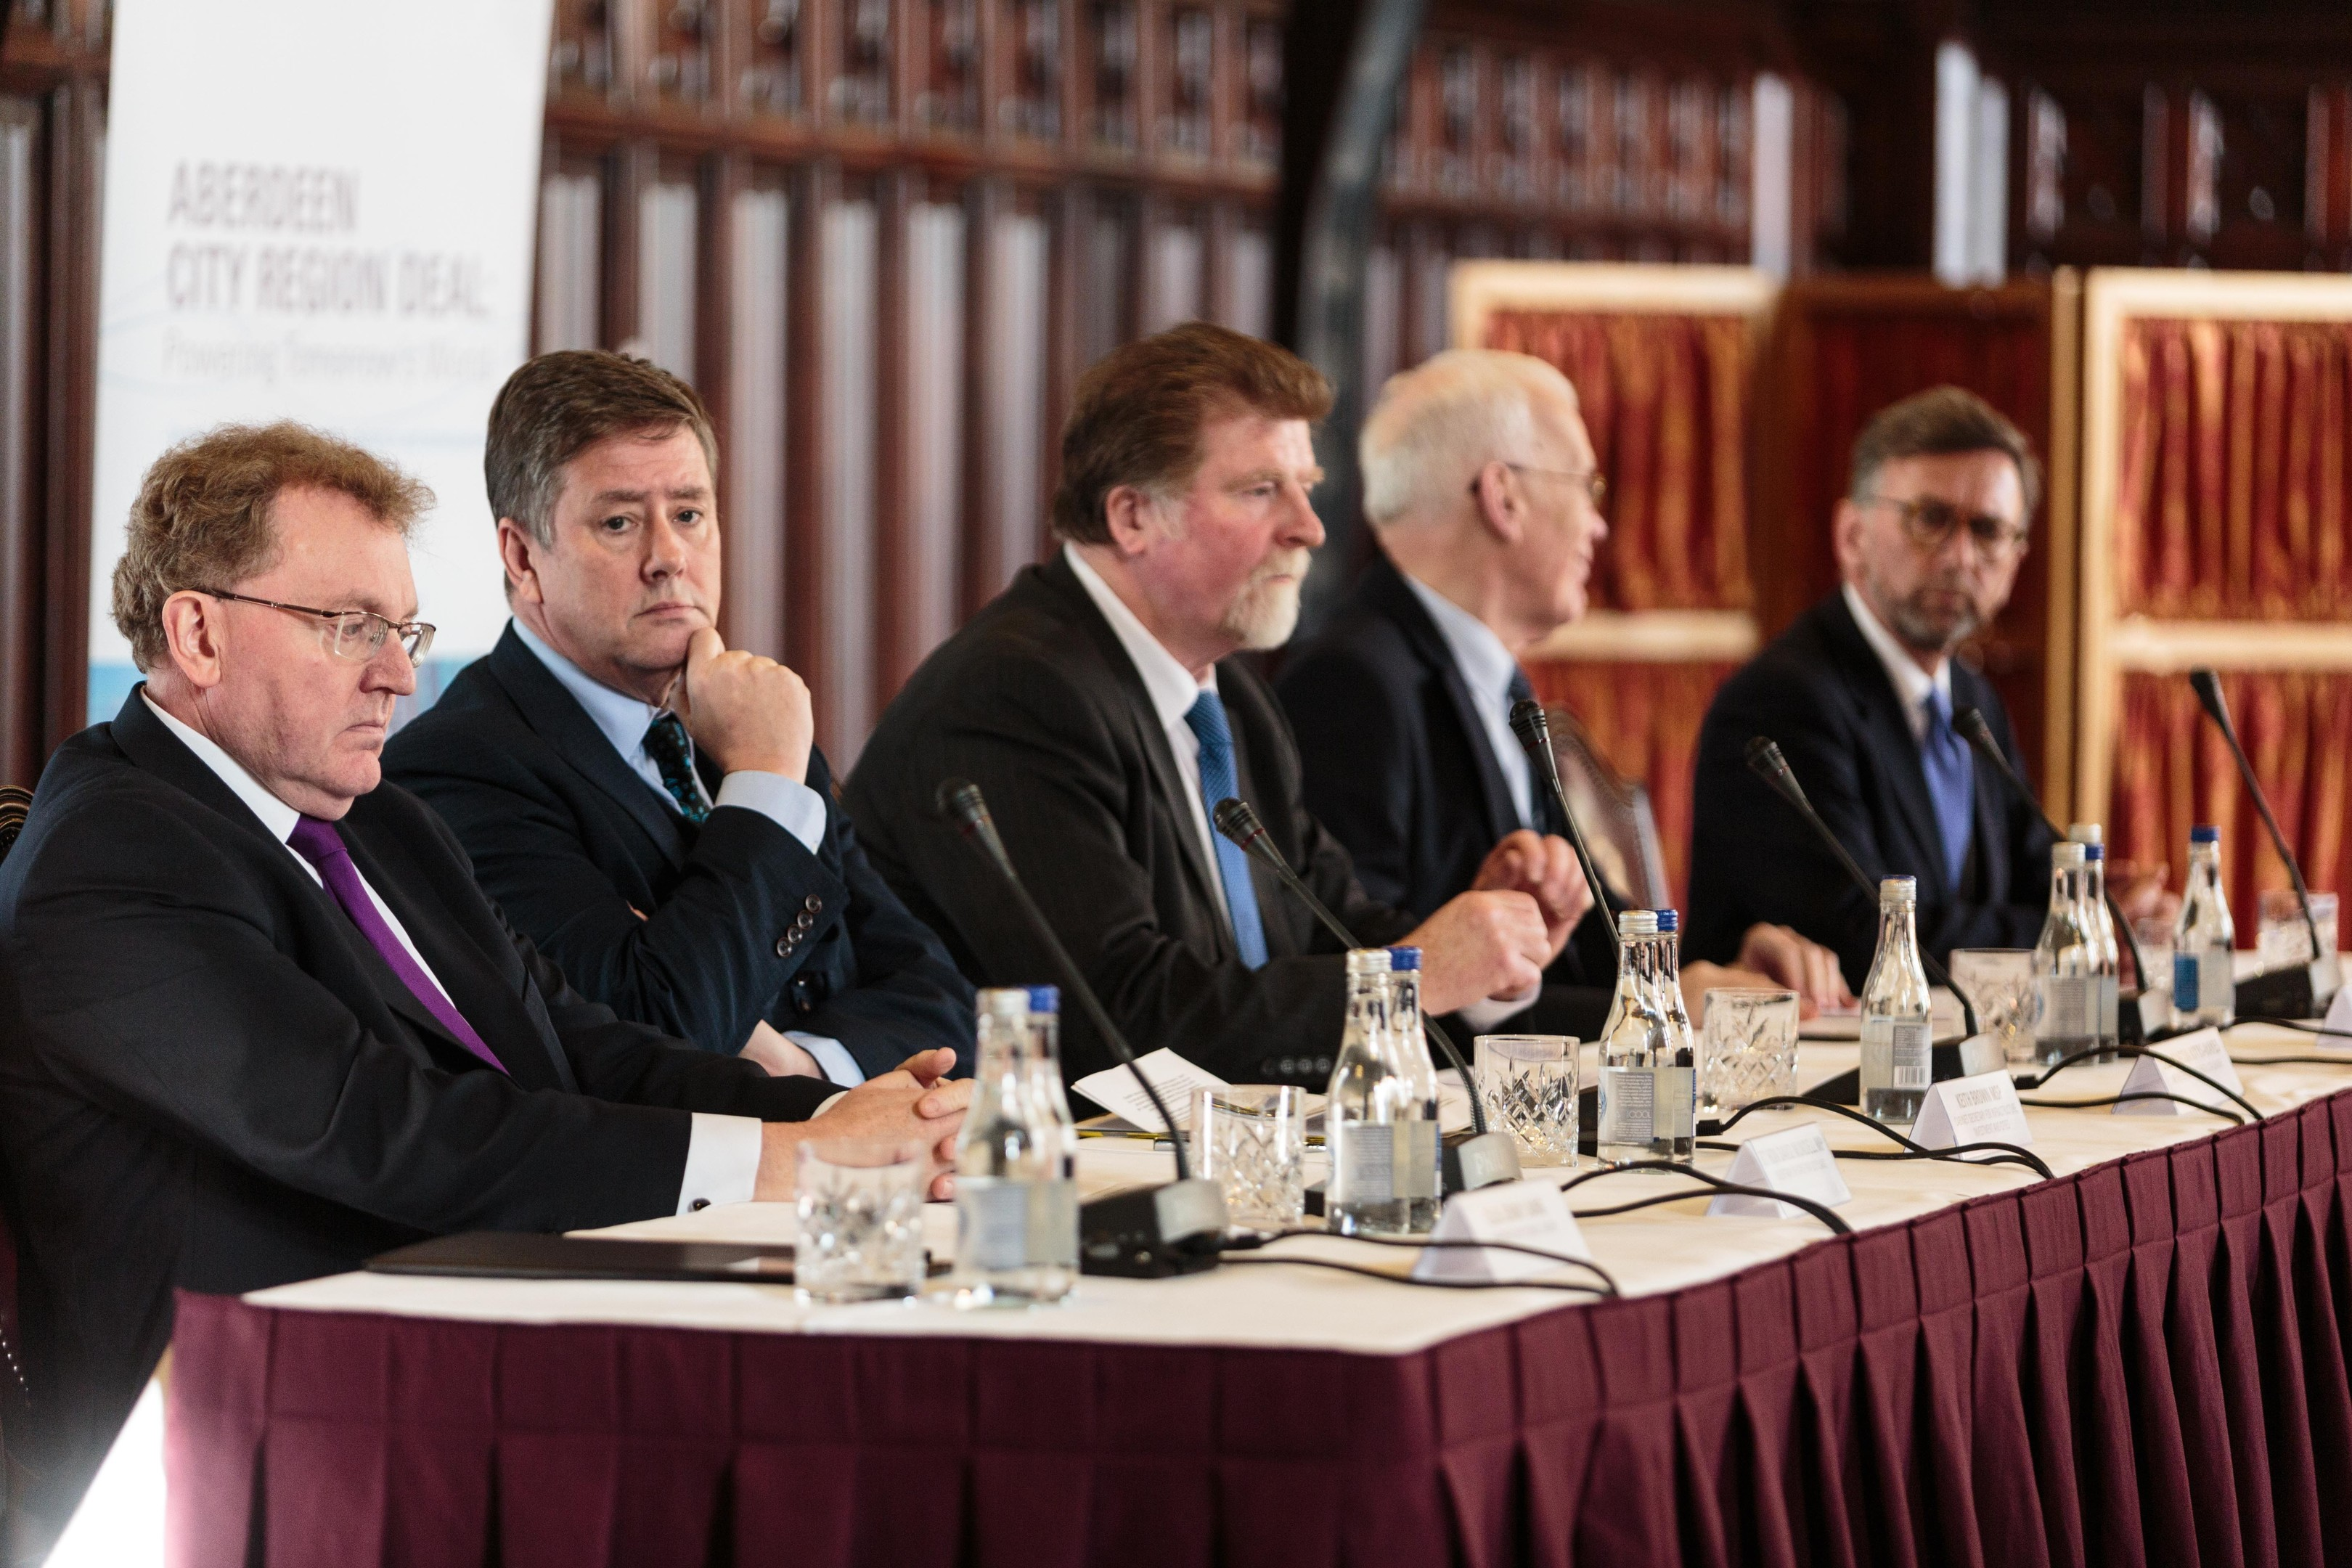 A meeting of regional and national representatives of the City Region Deal.